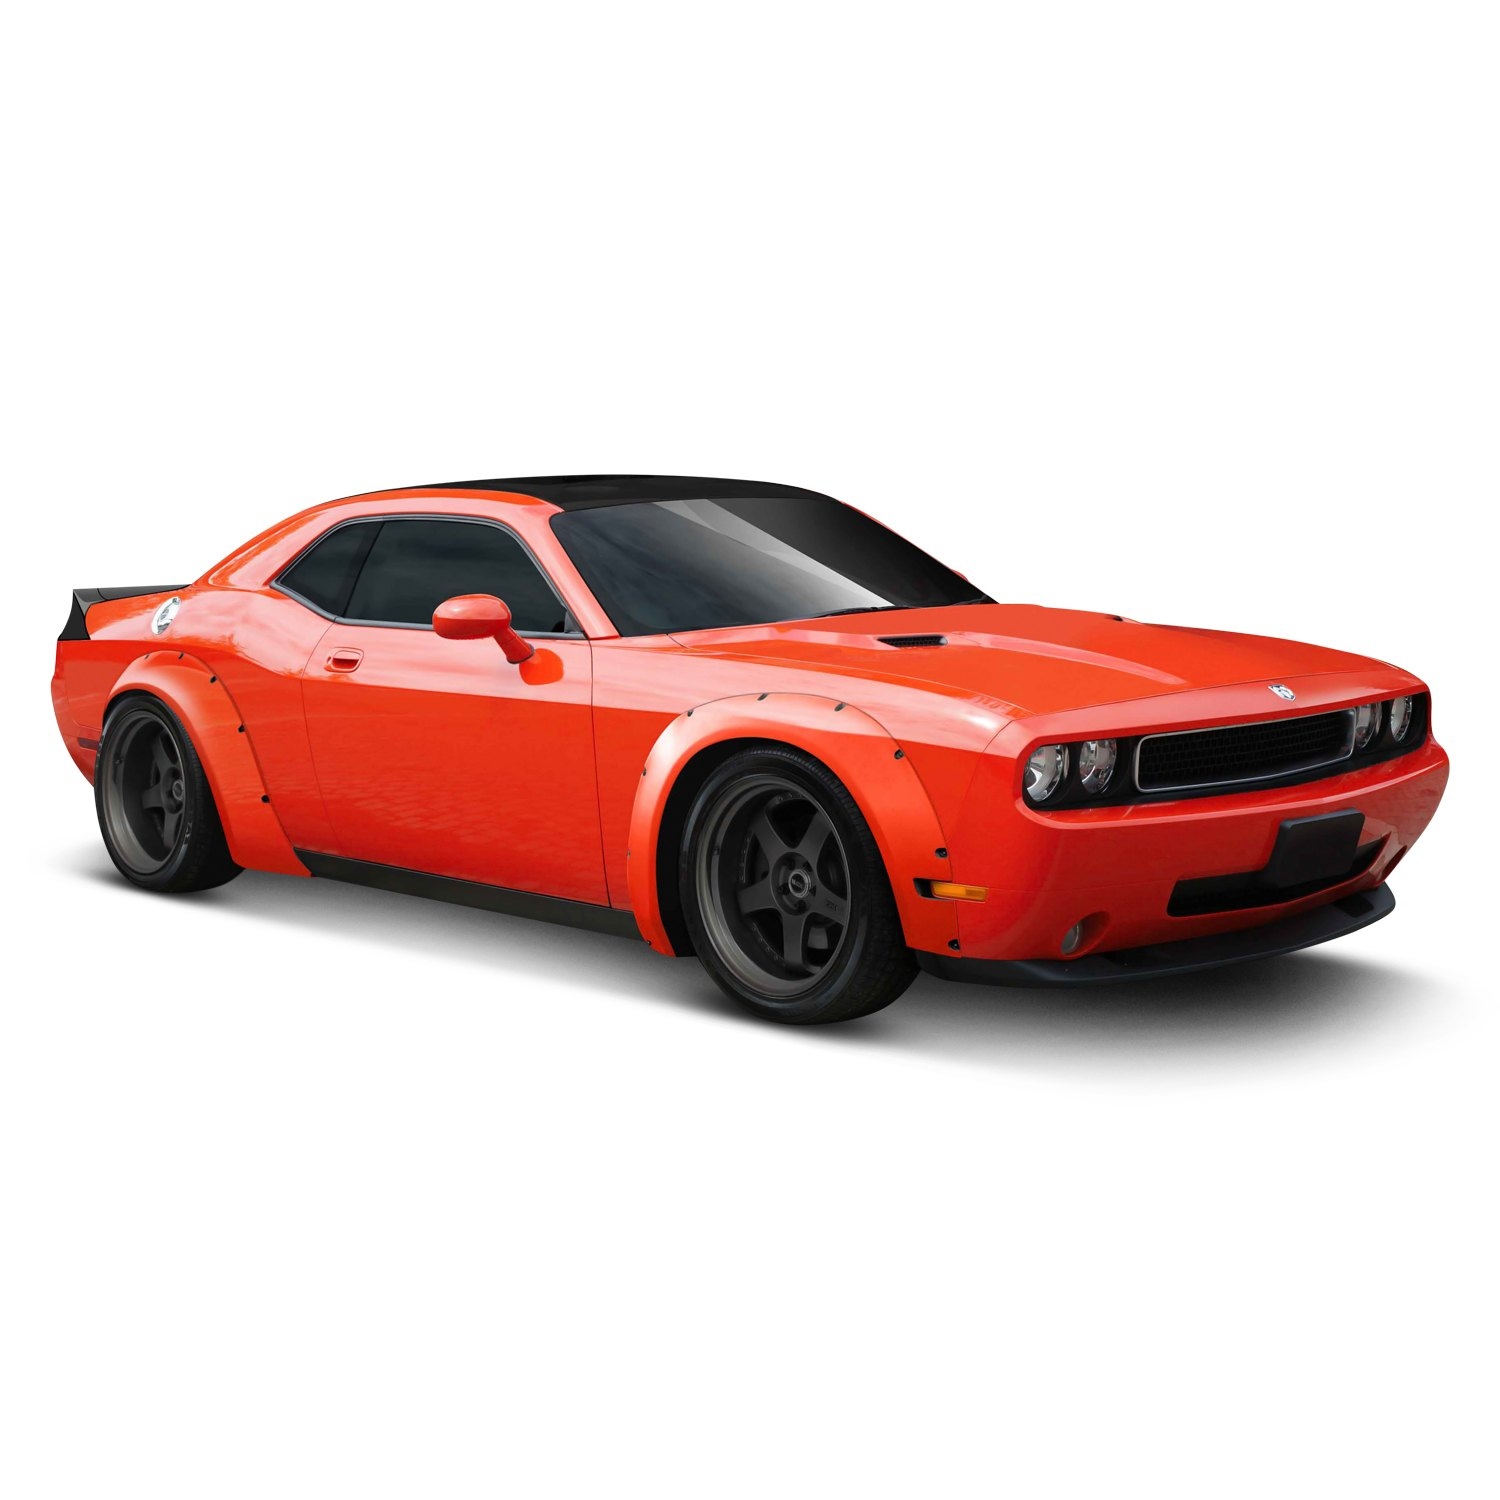 113233-oncar-01 Take A Look About Challenger Floor Mats with Terrific Pictures Cars Review